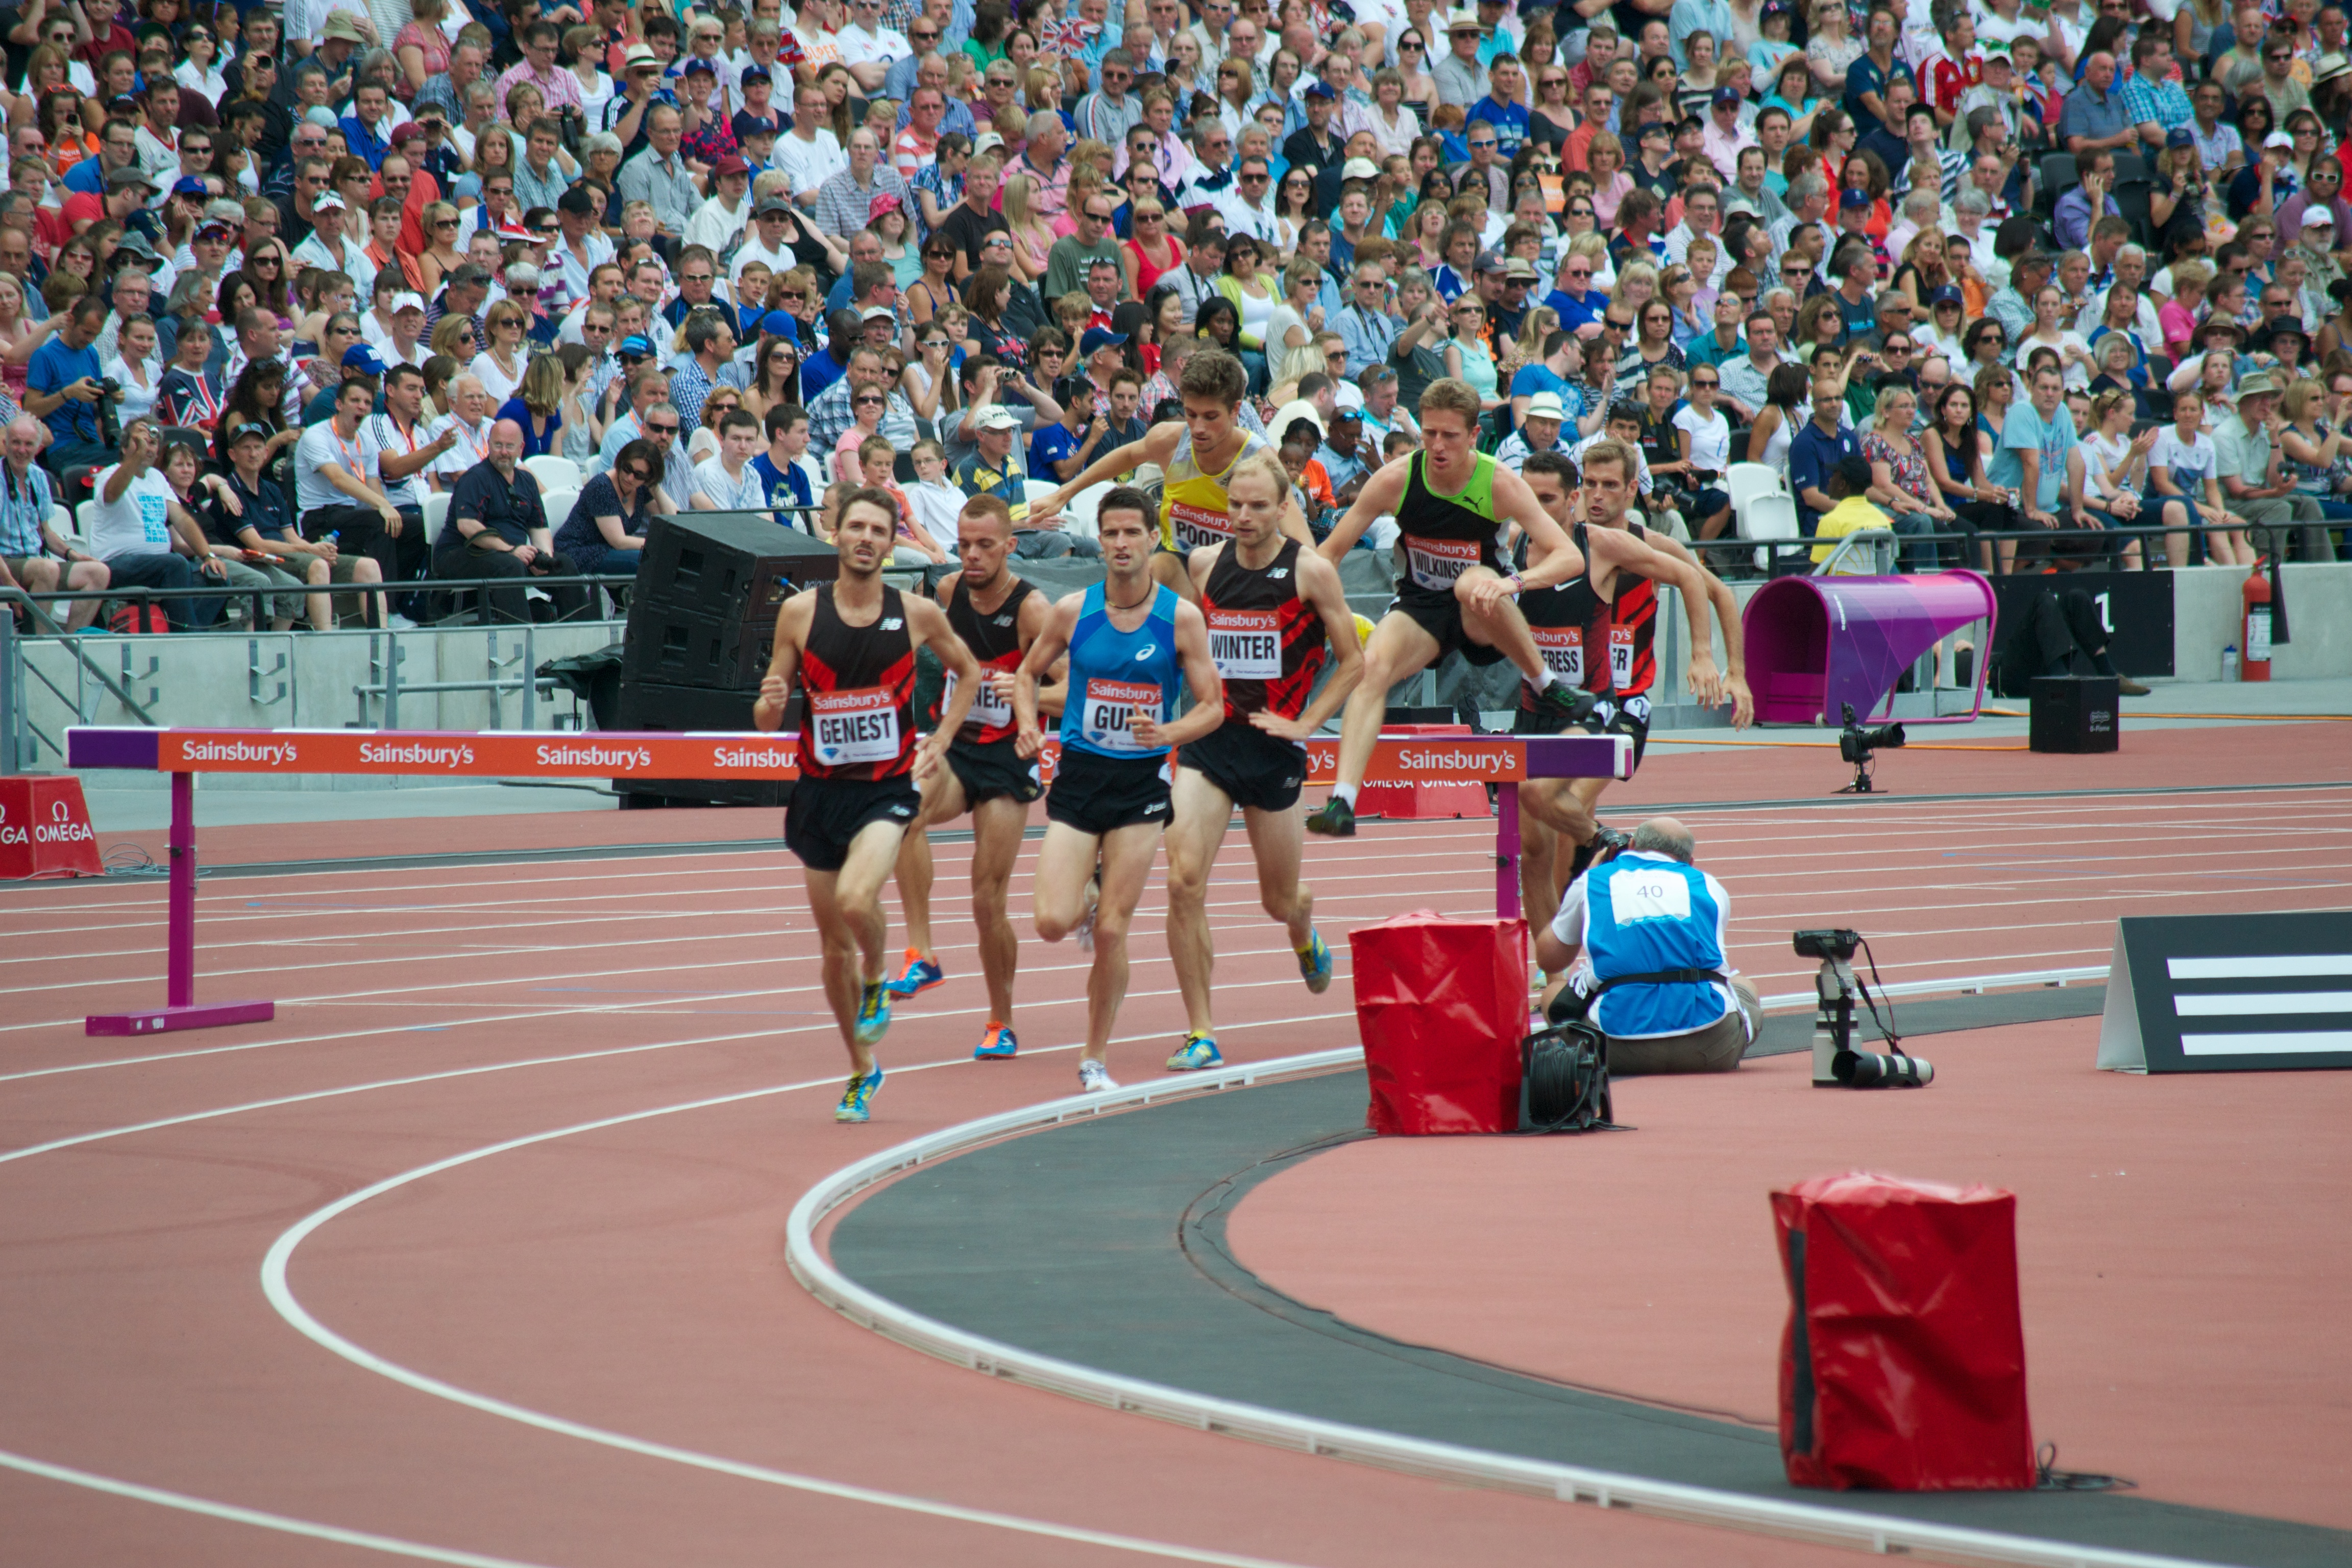 File:Men's 3000 Metres Steeplechase London 2013.jpg - Wikimedia ...